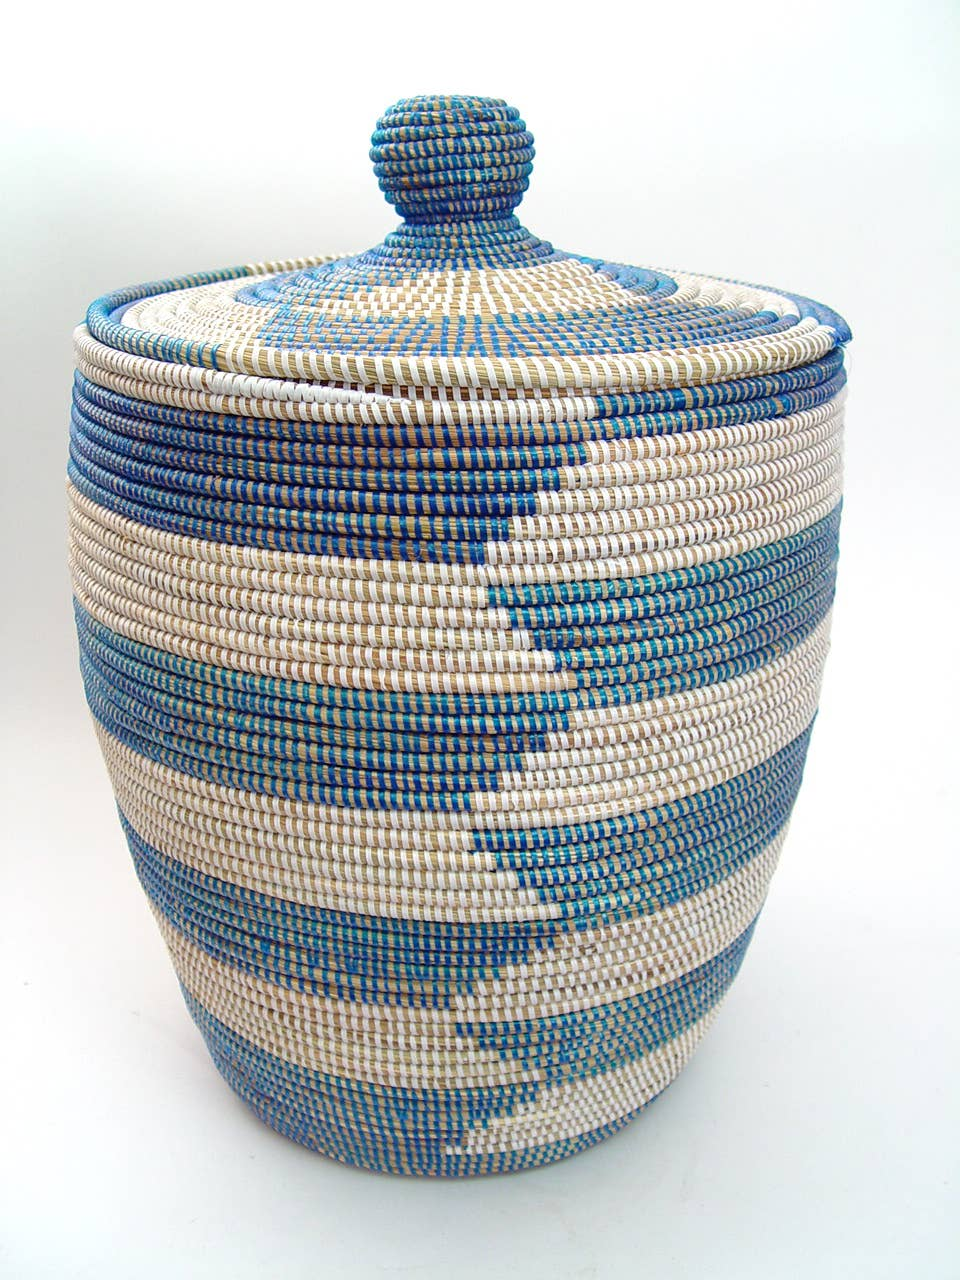 MBARE Ltd - Senegalese Hamper - Alternating Blue Stripe